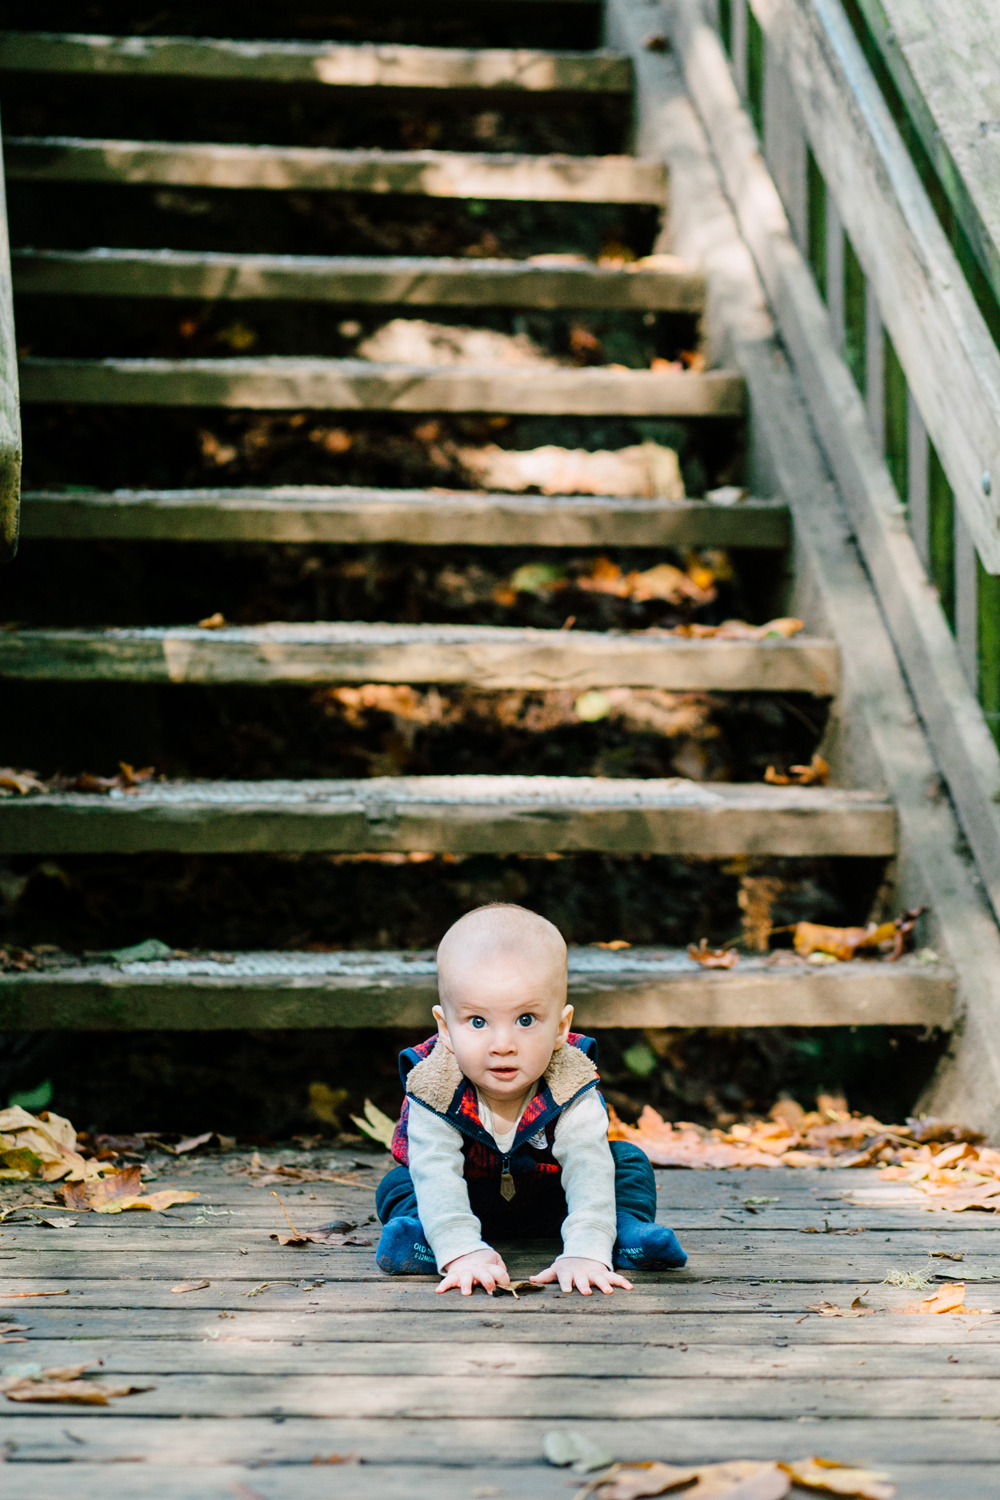 125-seattle-family-photographer-katheryn-moran-dash-point-state-park.jpg